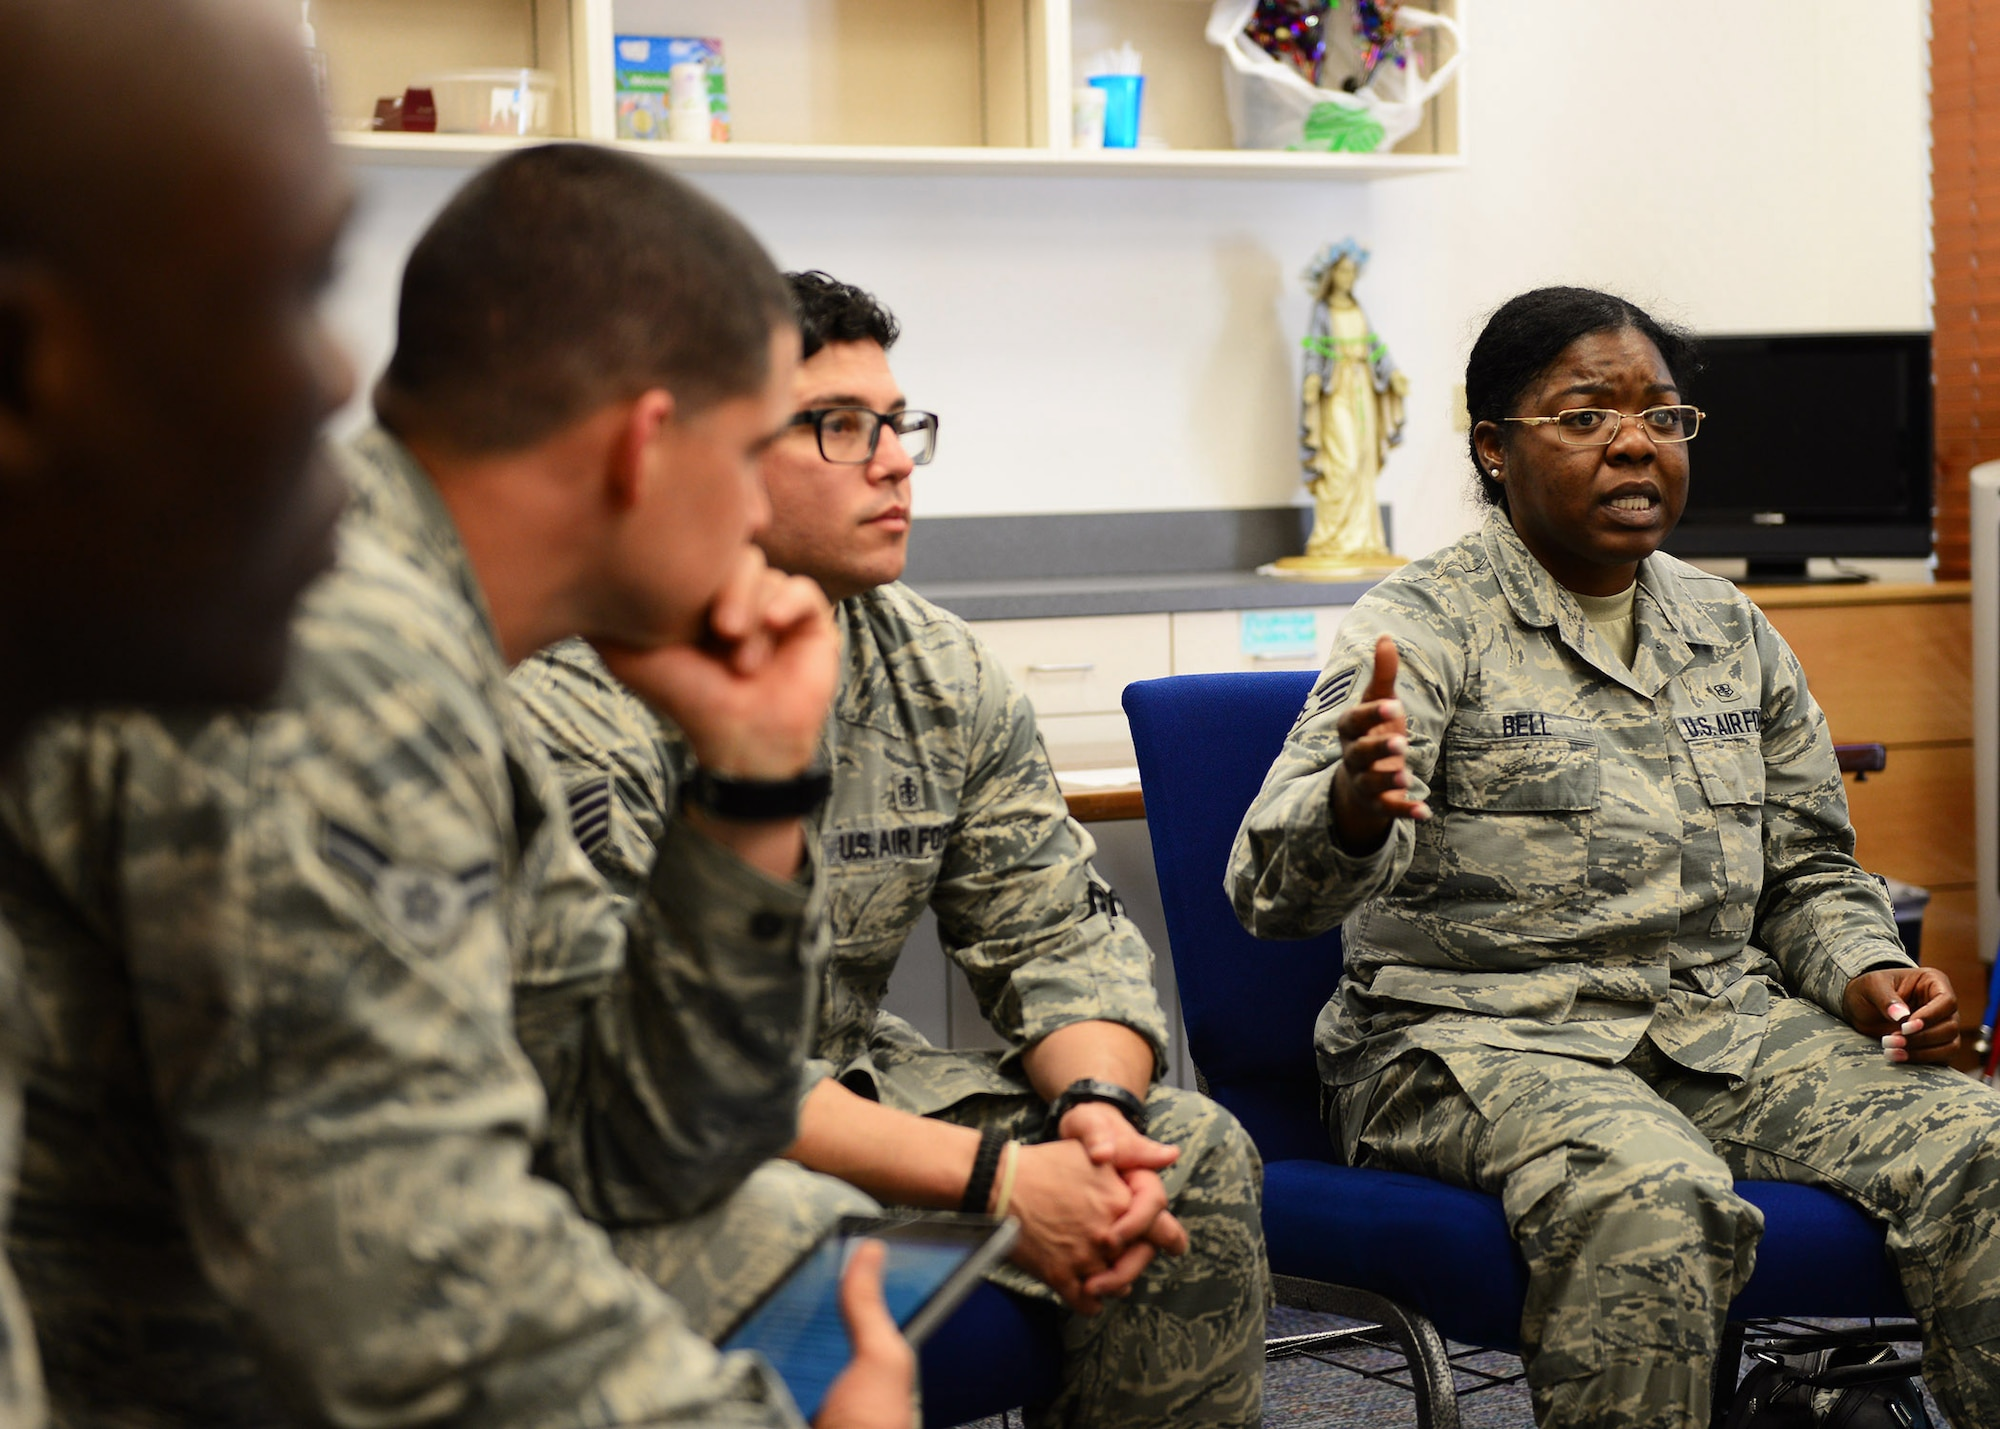 U.S. Air Force Senior Airman June Bell, 47th Medical Group troop and a participant of the Celebrate Life panel, shares her story during a break-out group discussion before present at the annual Senior Leaders Conference at Joint Base San Antonio-Randolph, Texas Oct. 19, 2017. The presentations were the culmination of several days of discussions during the conference in which Airmen were divided into three groups and asked to get to know one another by telling their stories and drawing from one another's experiences. (U.S. Air Force photo by Staff Sgt. Chip Pons)